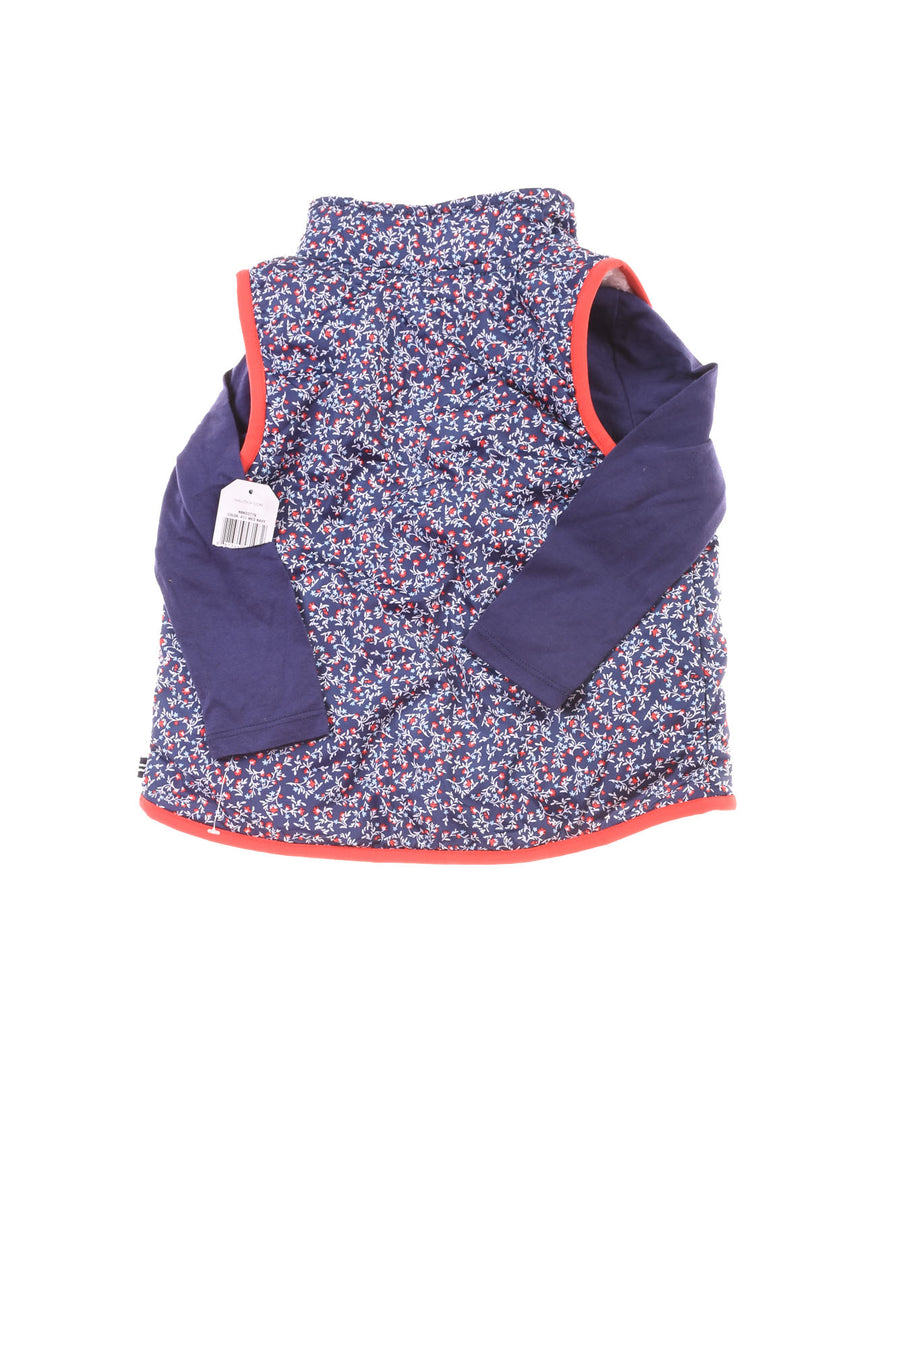 NEW Nautica Toddler Girl's Top  3T Blue & Red